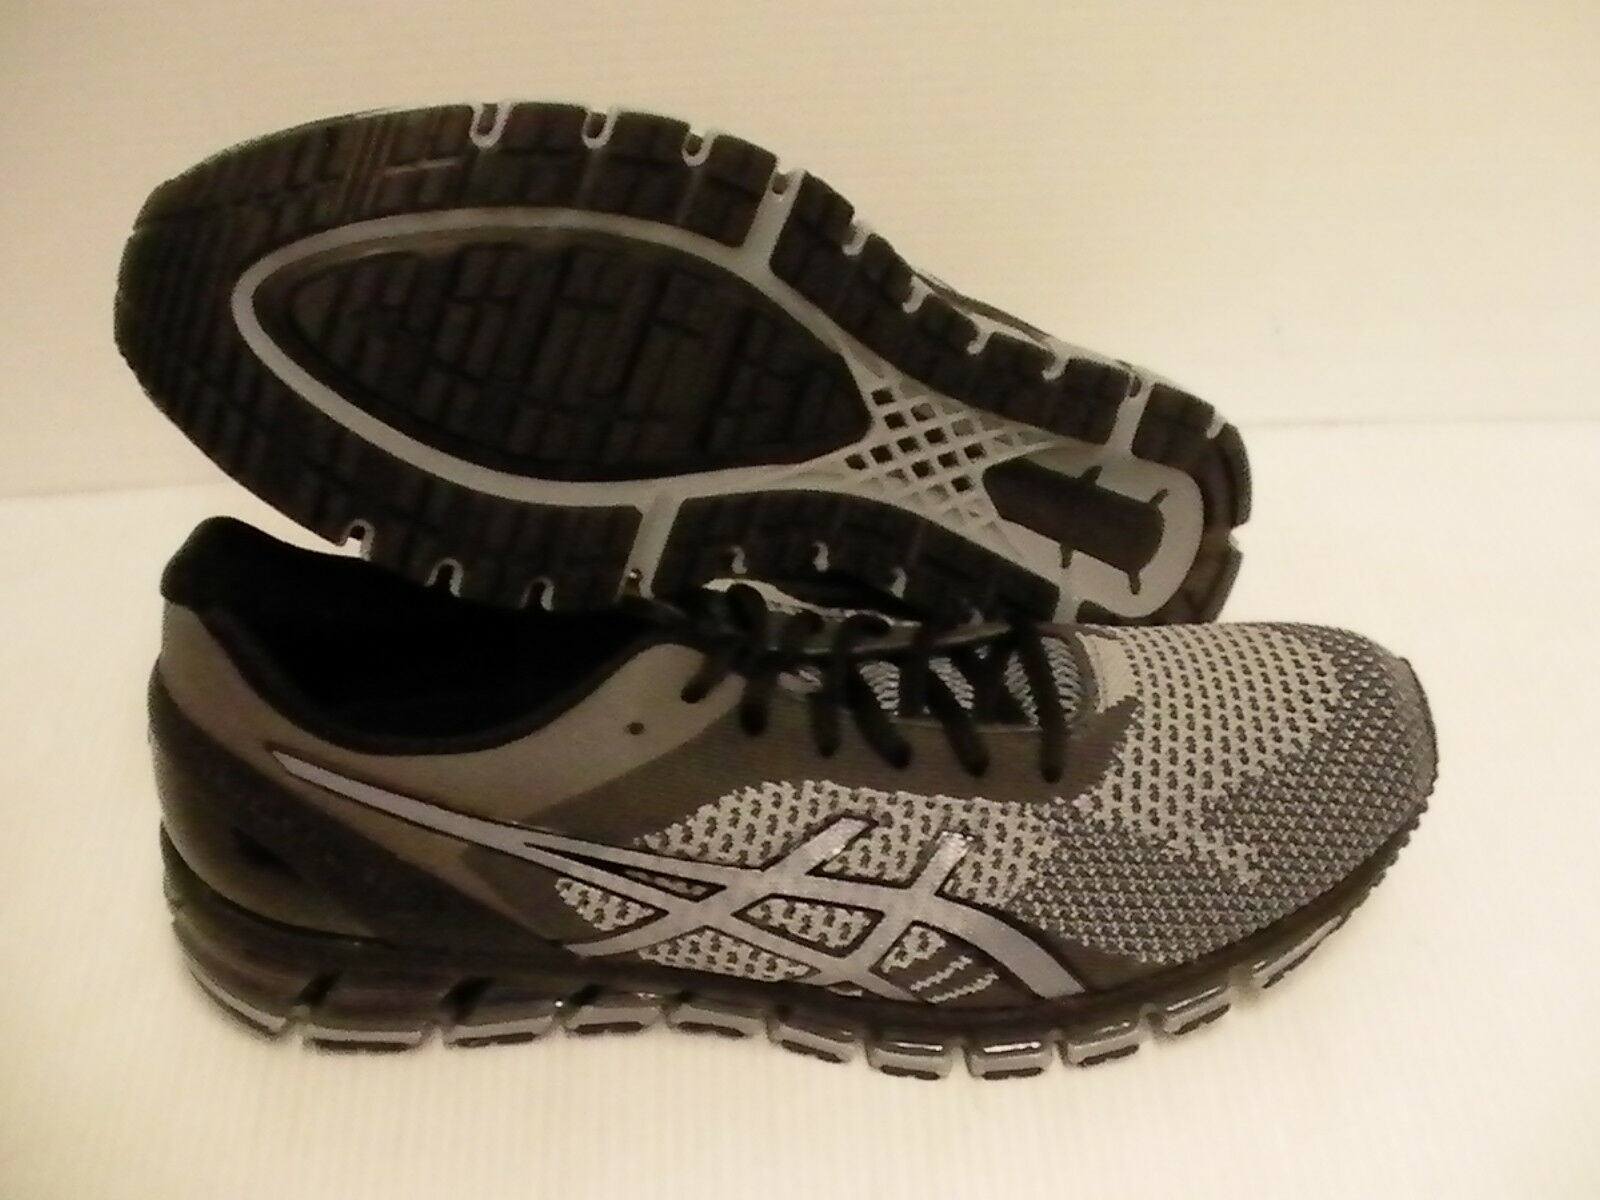 Asics men's gel quantum 360 knit running shoes mid grey carbon black size 12 us